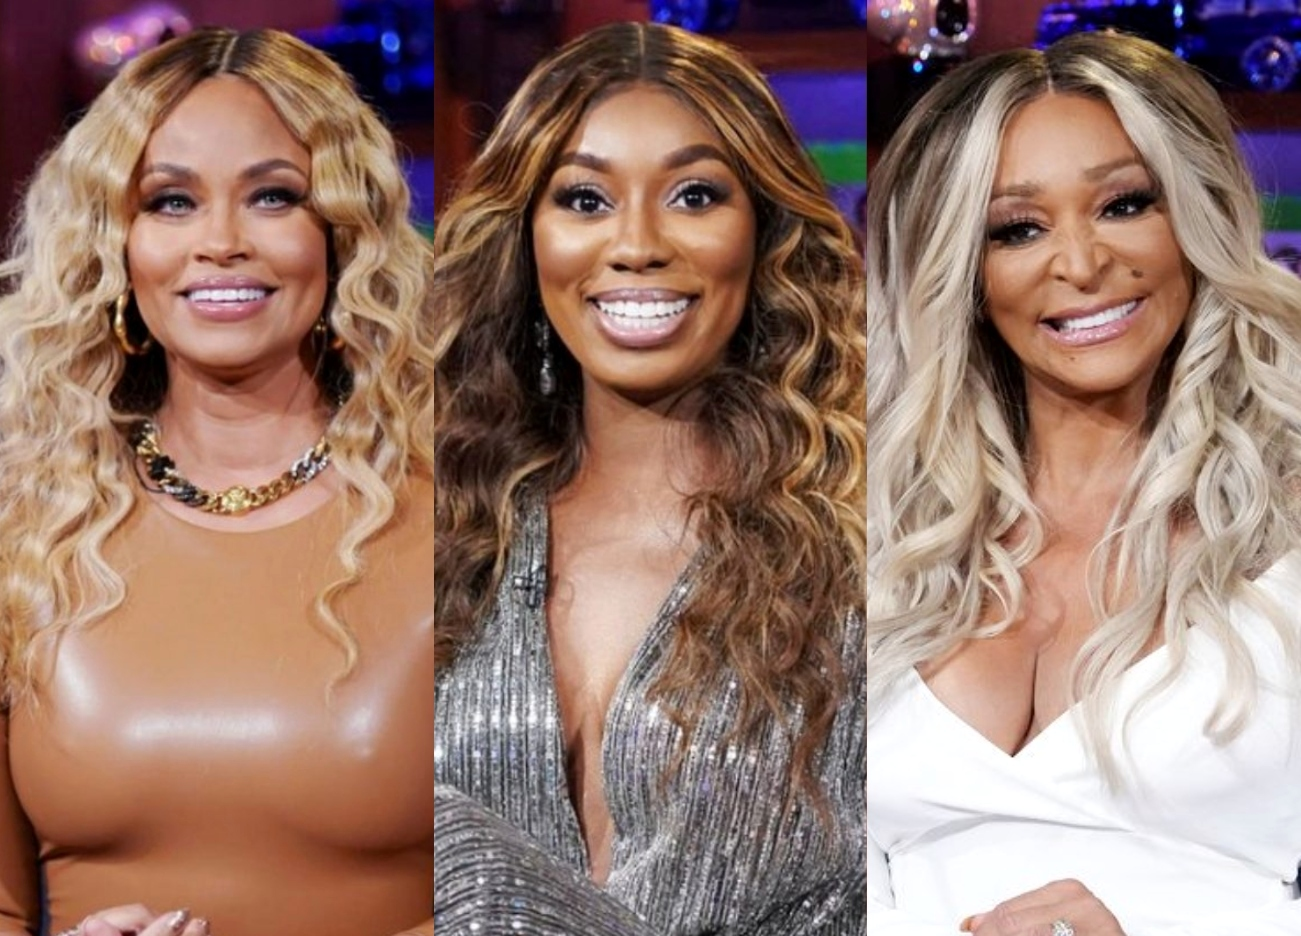 RHOP's Gizelle Bryant Says Wendy Osefo Owes Her an Apology as Karen Huger Shades Her and Suggests Her Apology Lacked Validity